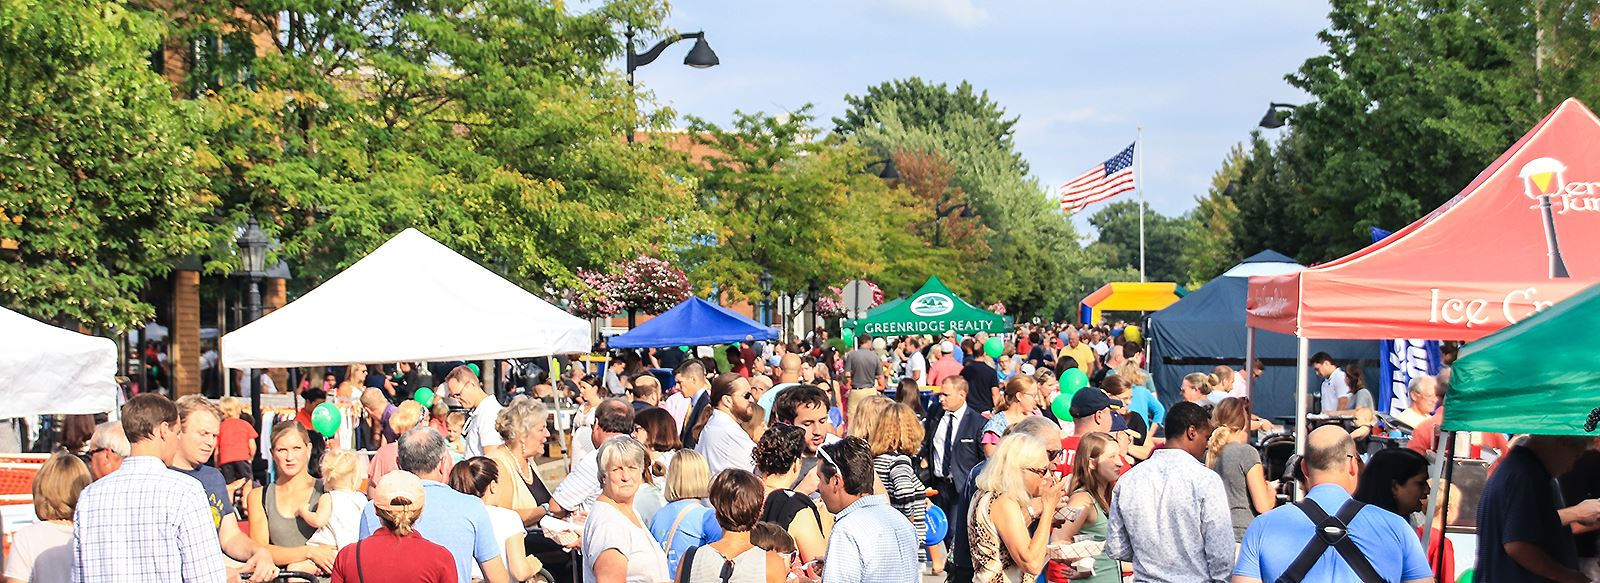 Taste of East in Gaslight Village